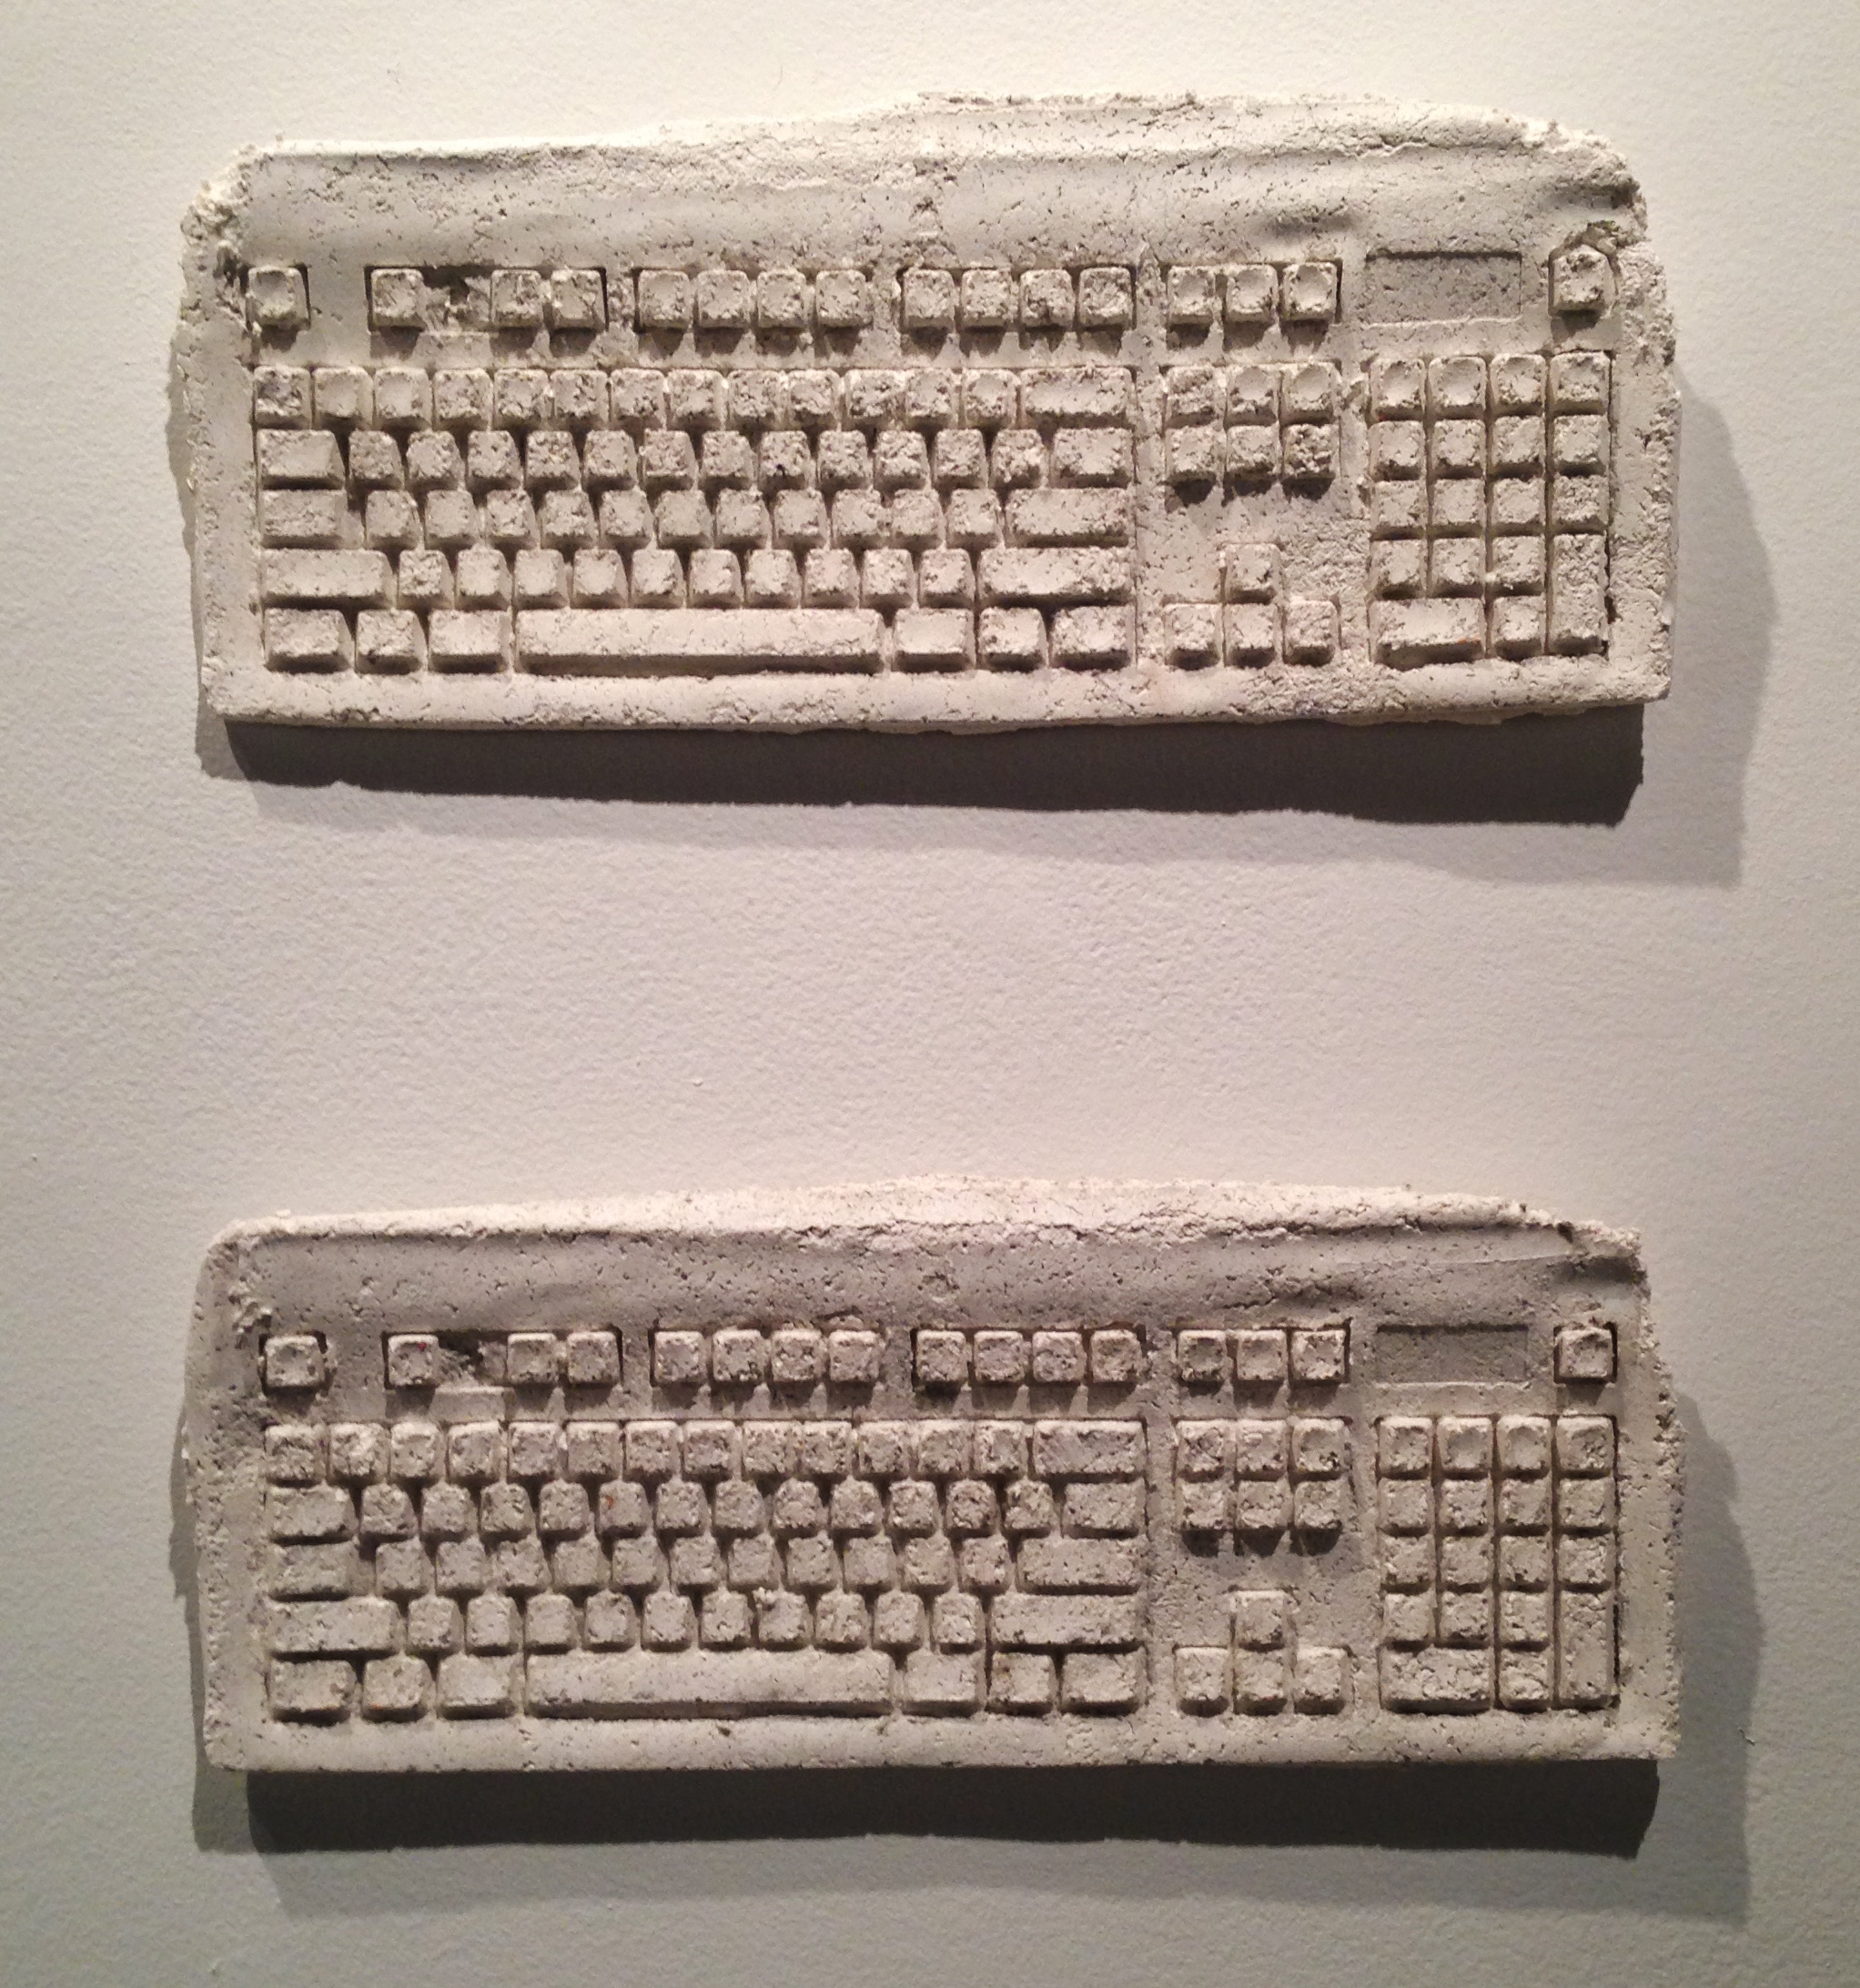 Paper Pulp Keyboards at The Steinberg Museum of Art